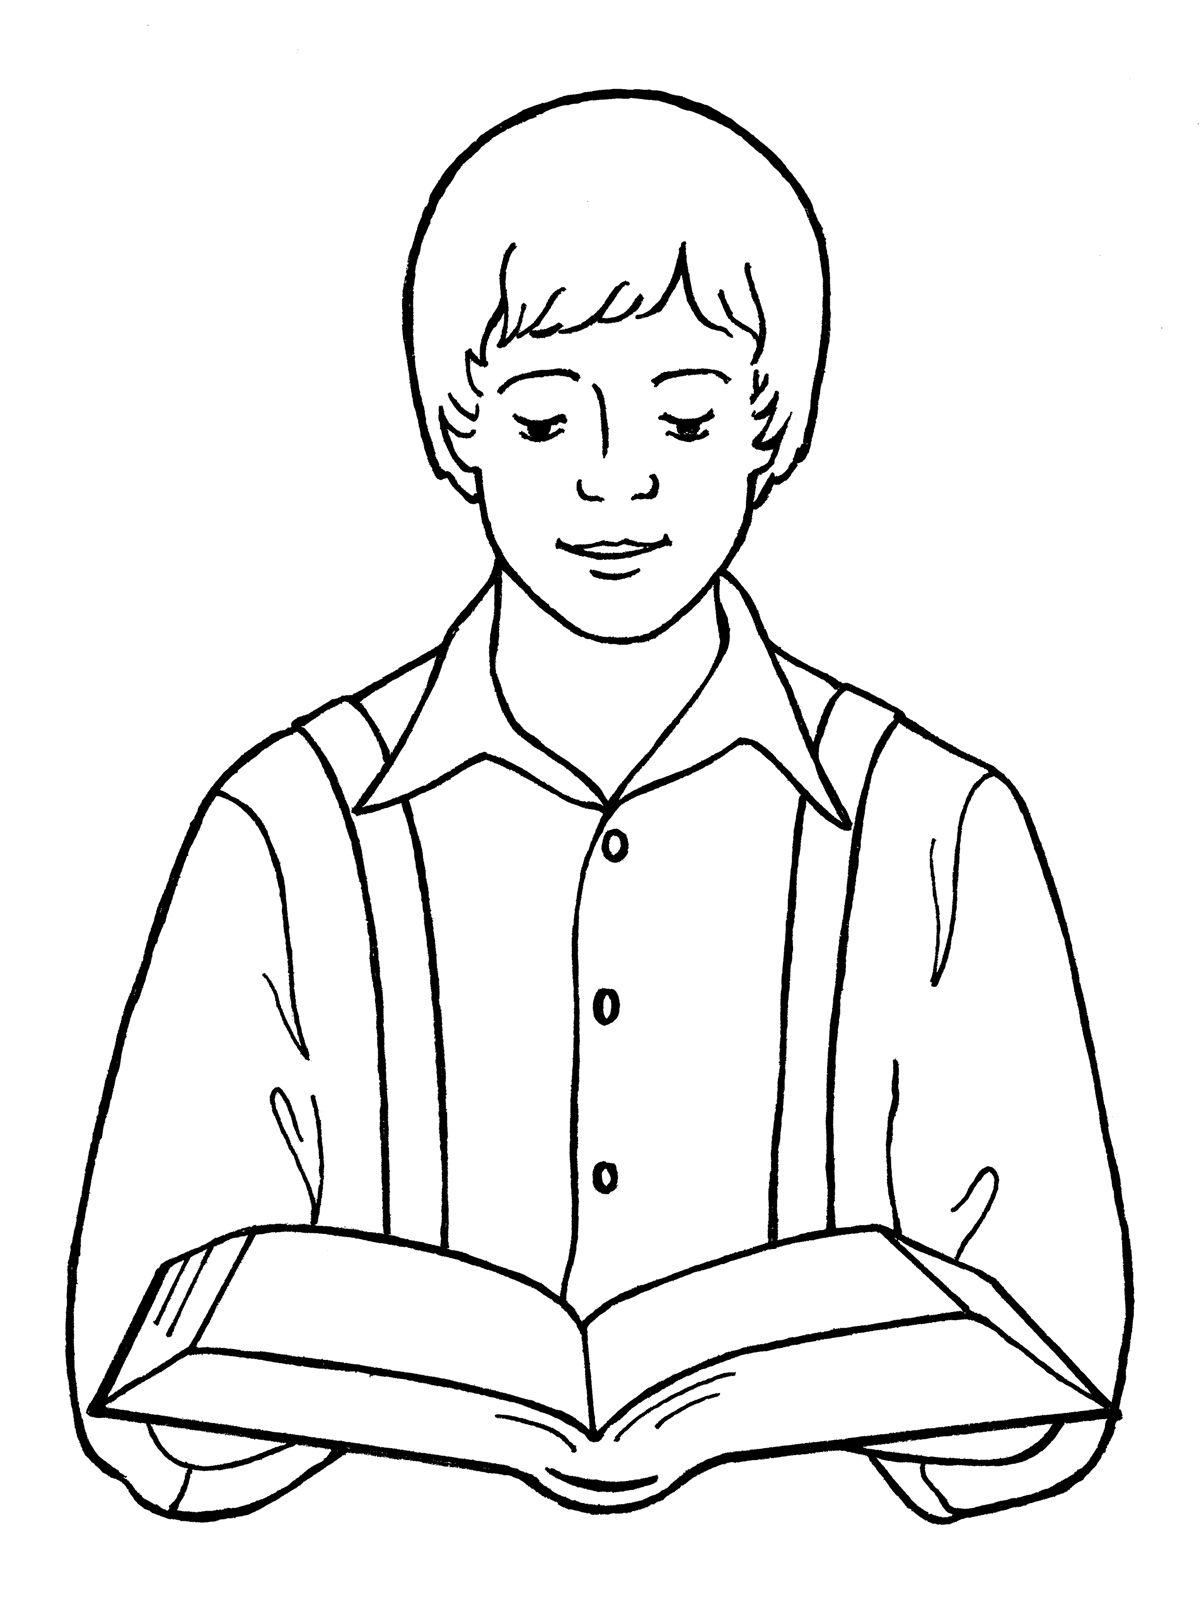 Primary 3 Lesson 4 Joseph Smith Reading Bible Bible